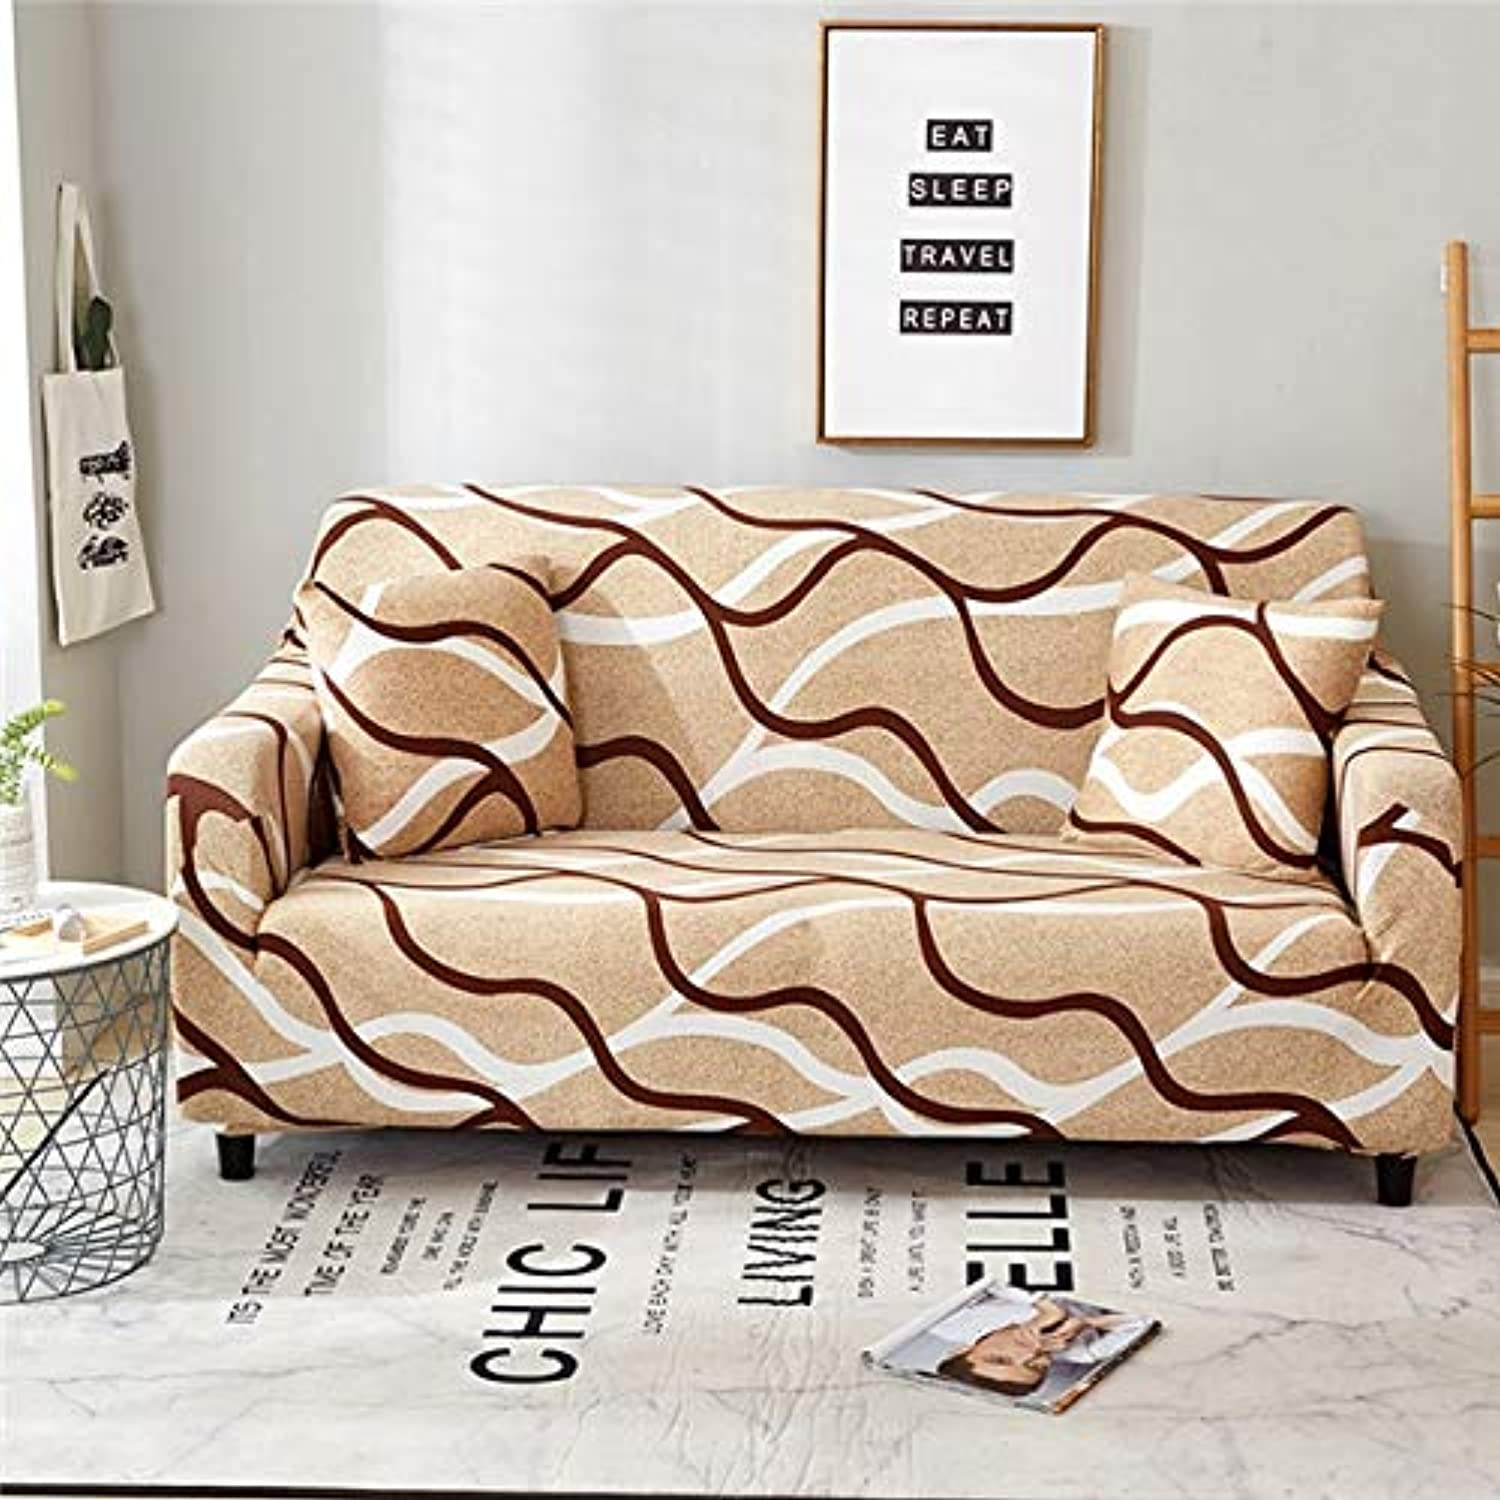 Monstera Printing Spandex Elastic Slipcovers Predective Sectional Sofa Cover Stretch All-Inclusive Couch Cover for Living Room   4, Two-Seater